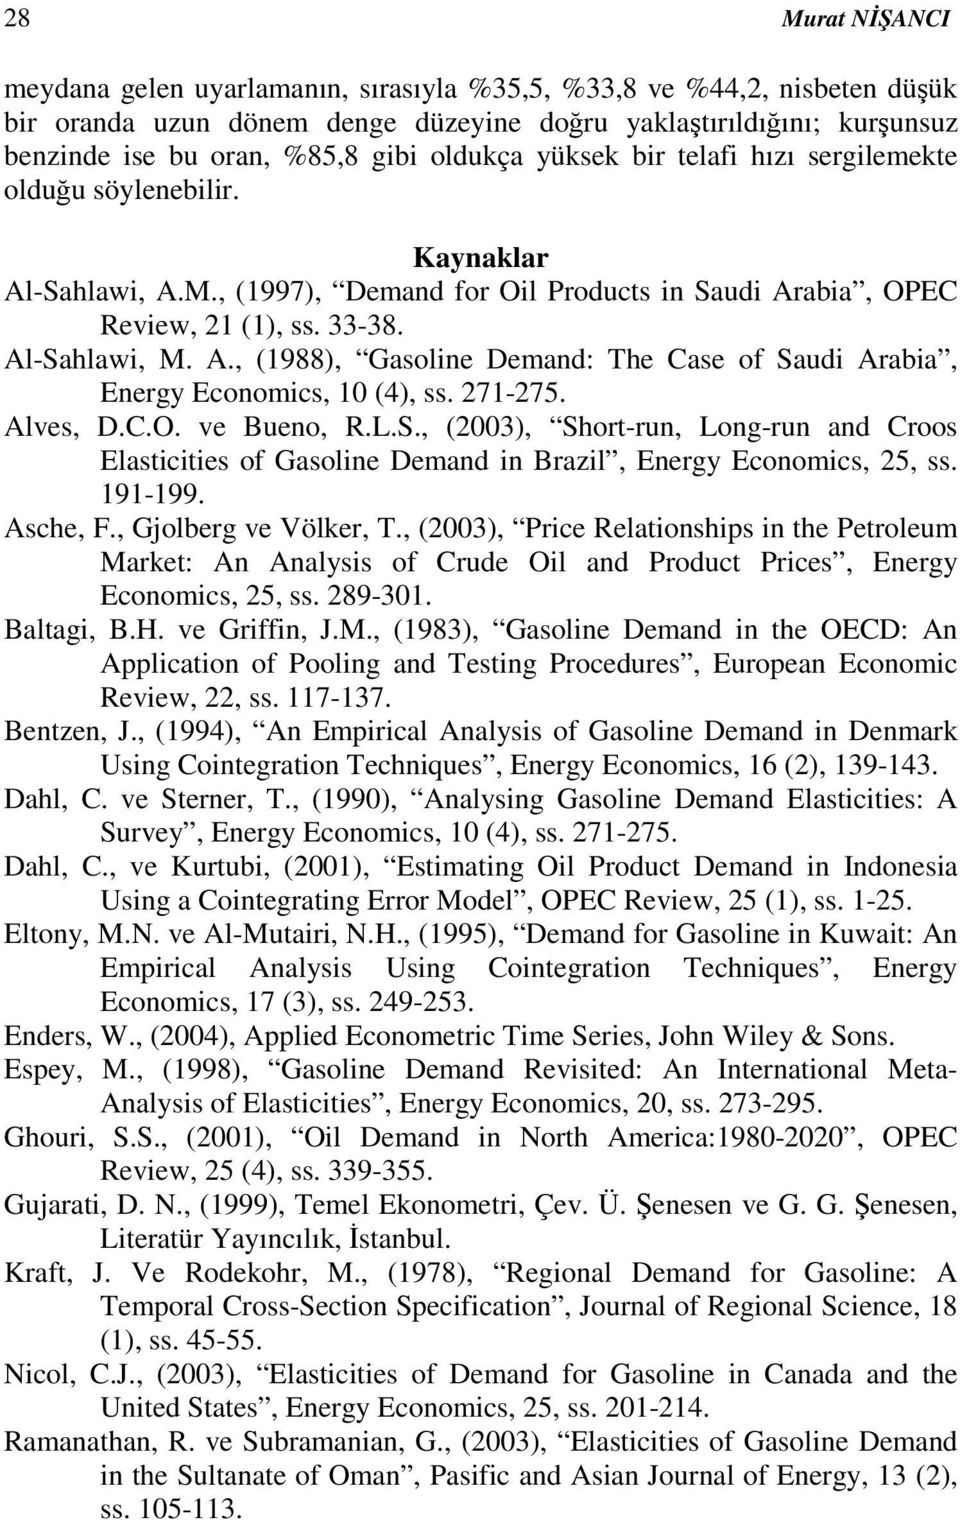 271-275. Alves, D.C.O. ve Bueno, R.L.S., (2003), Short-run, Long-run and Croos Elasticities of Gasoline Demand in Brazil, Energy Economics, 25, ss. 191-199. Asche, F., Gjolberg ve Völker, T.